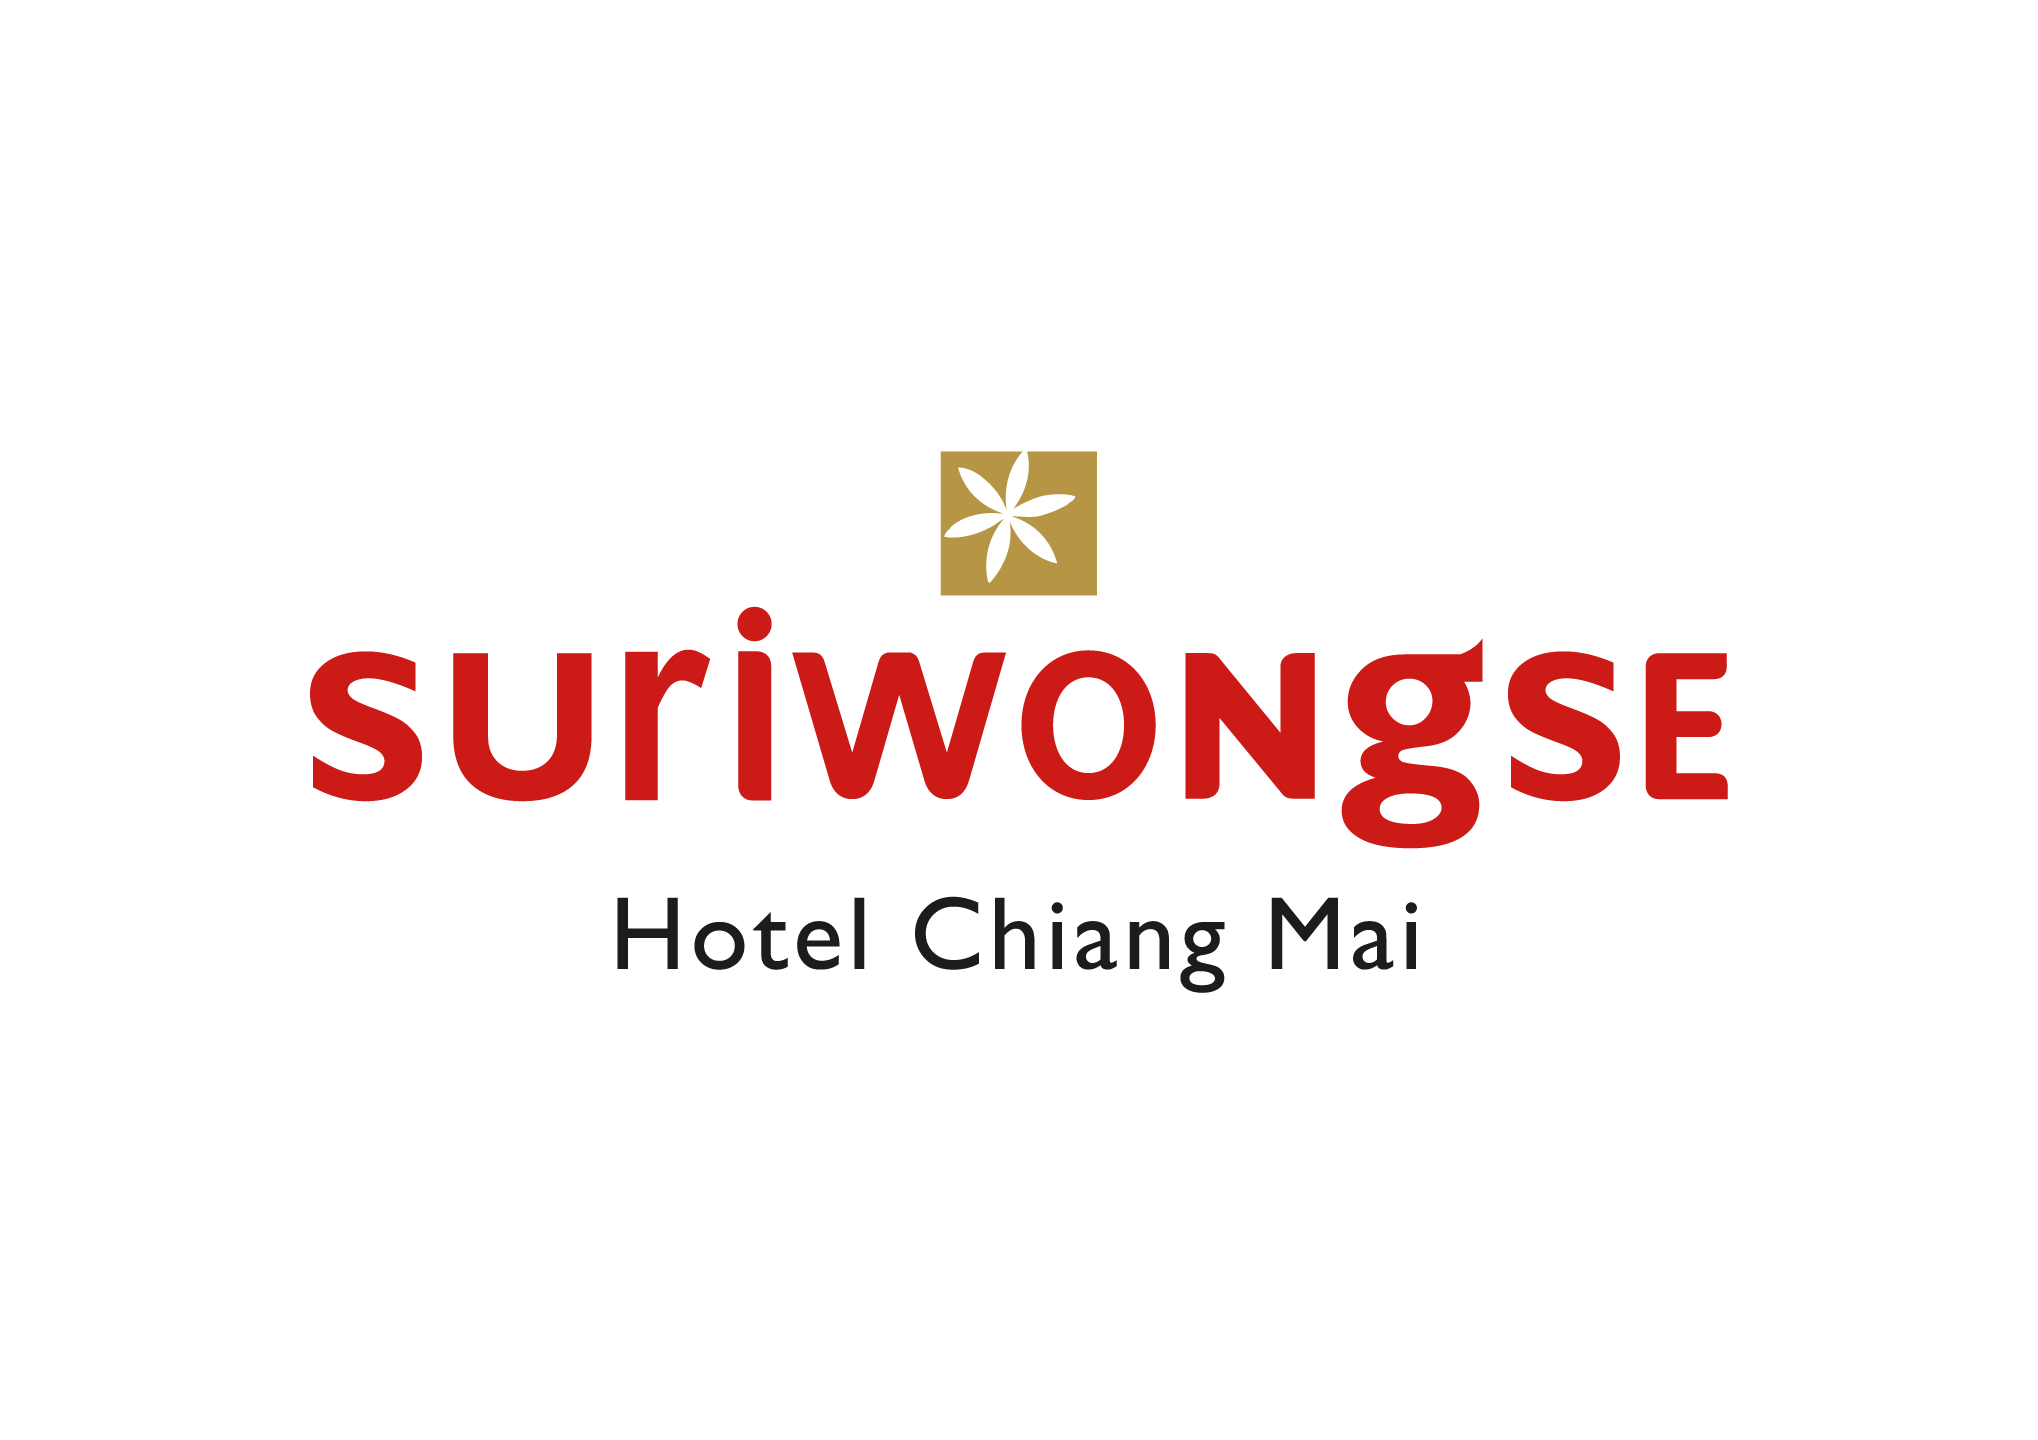 corporate identity design for suriwongse hotel chiang mai